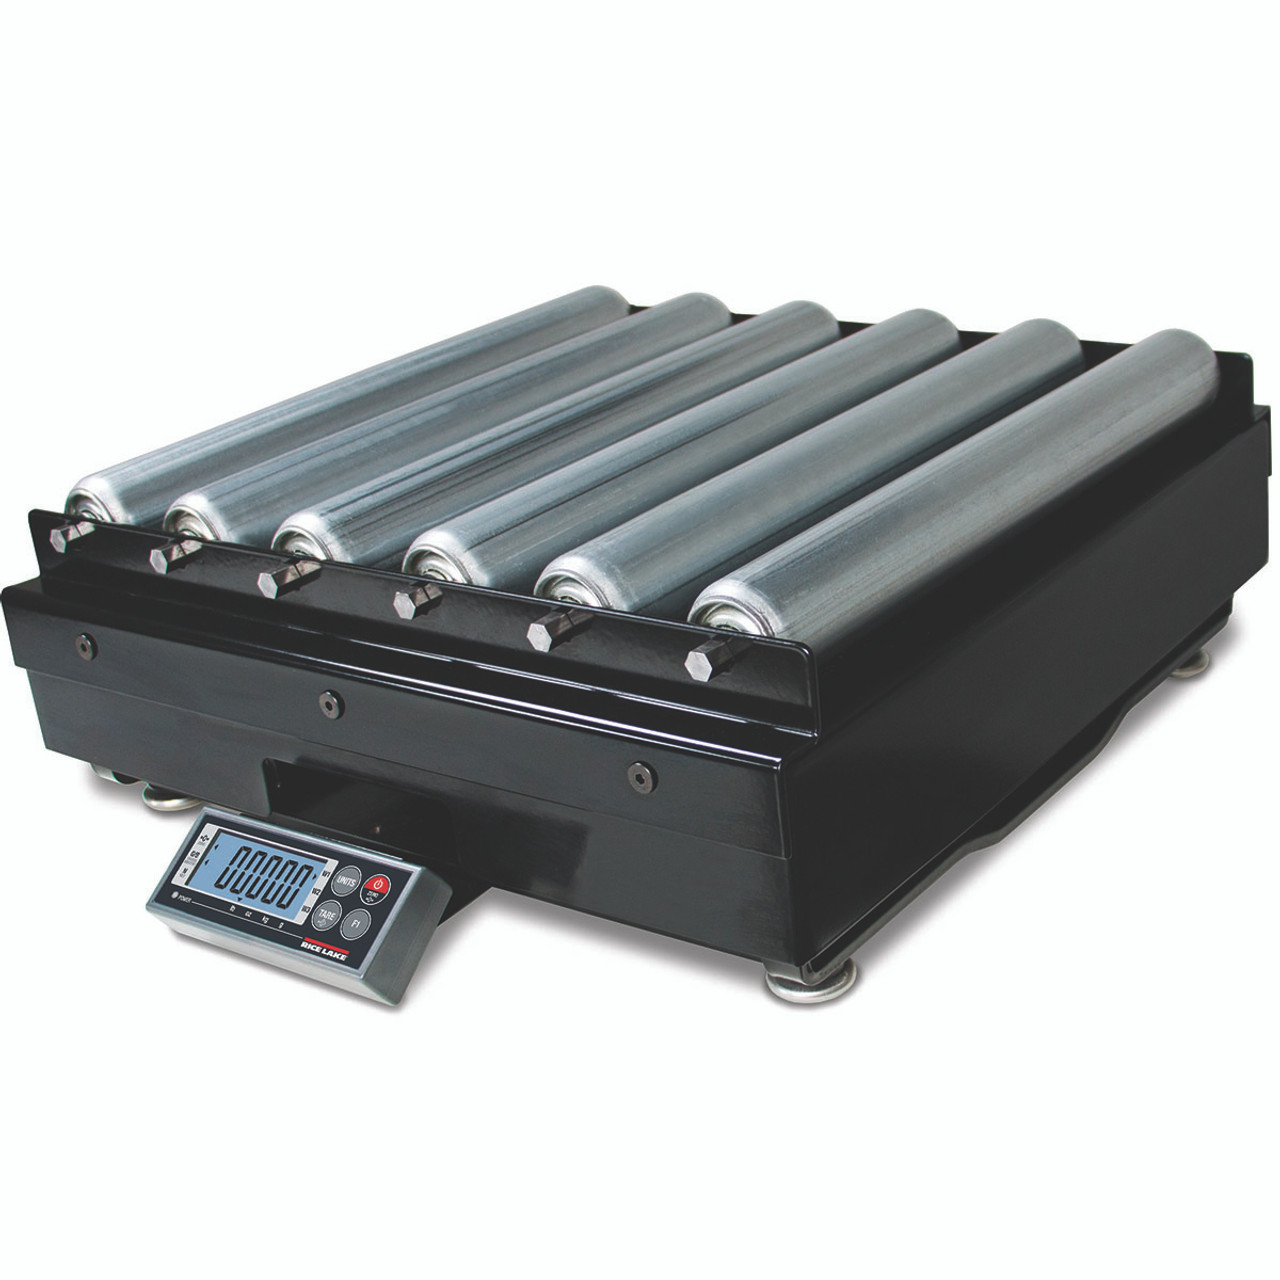 Bench Scale with Stainless Steel Platter NTEP Rice Lake BP 1818-50S 100 lb x 0.02 lb